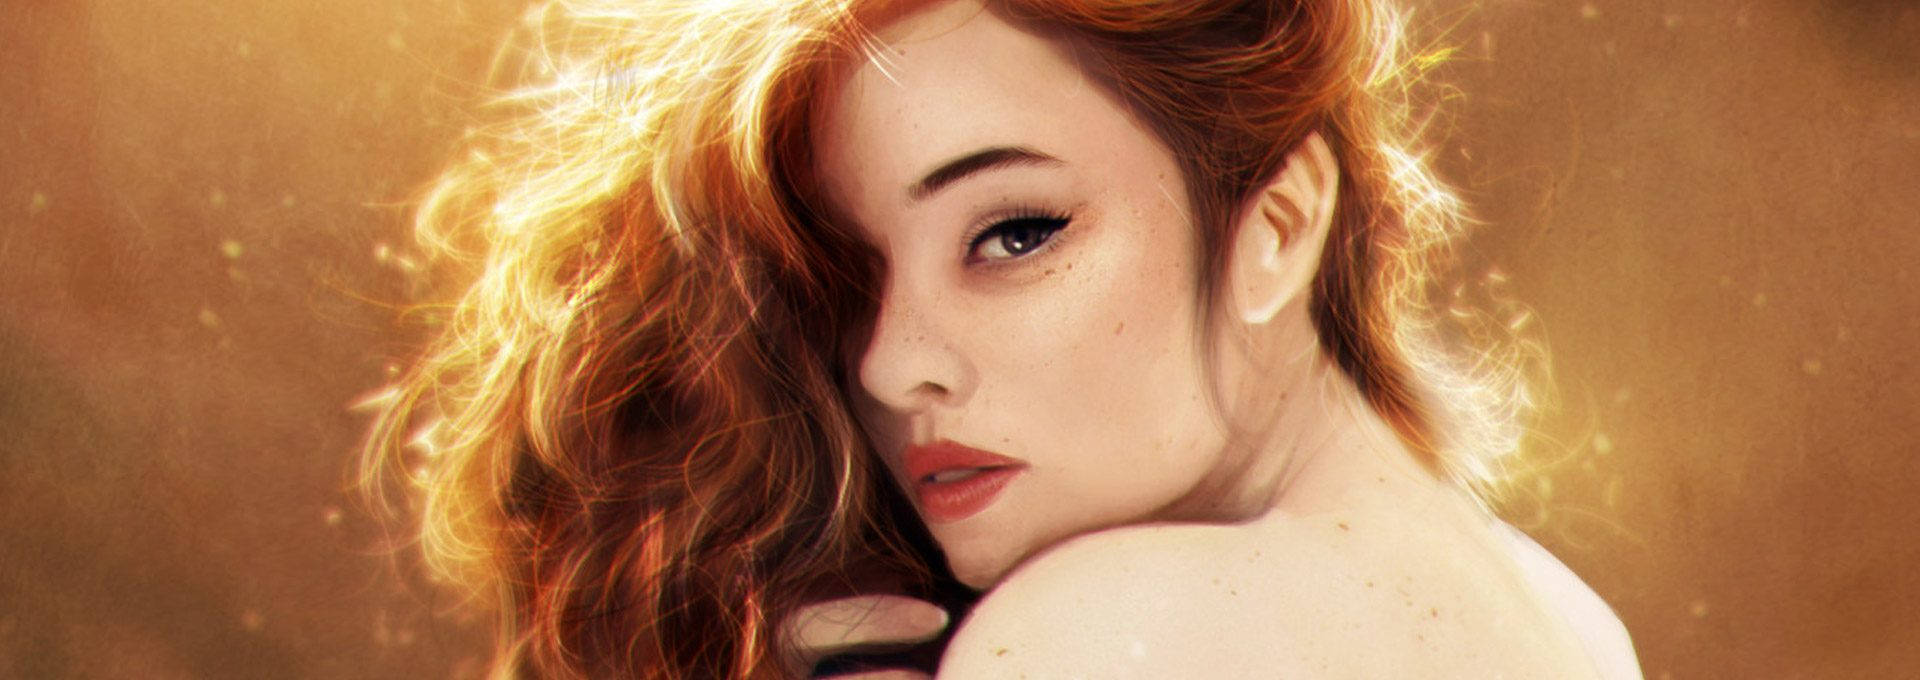 Digital Painting Weekly Inspiration #003